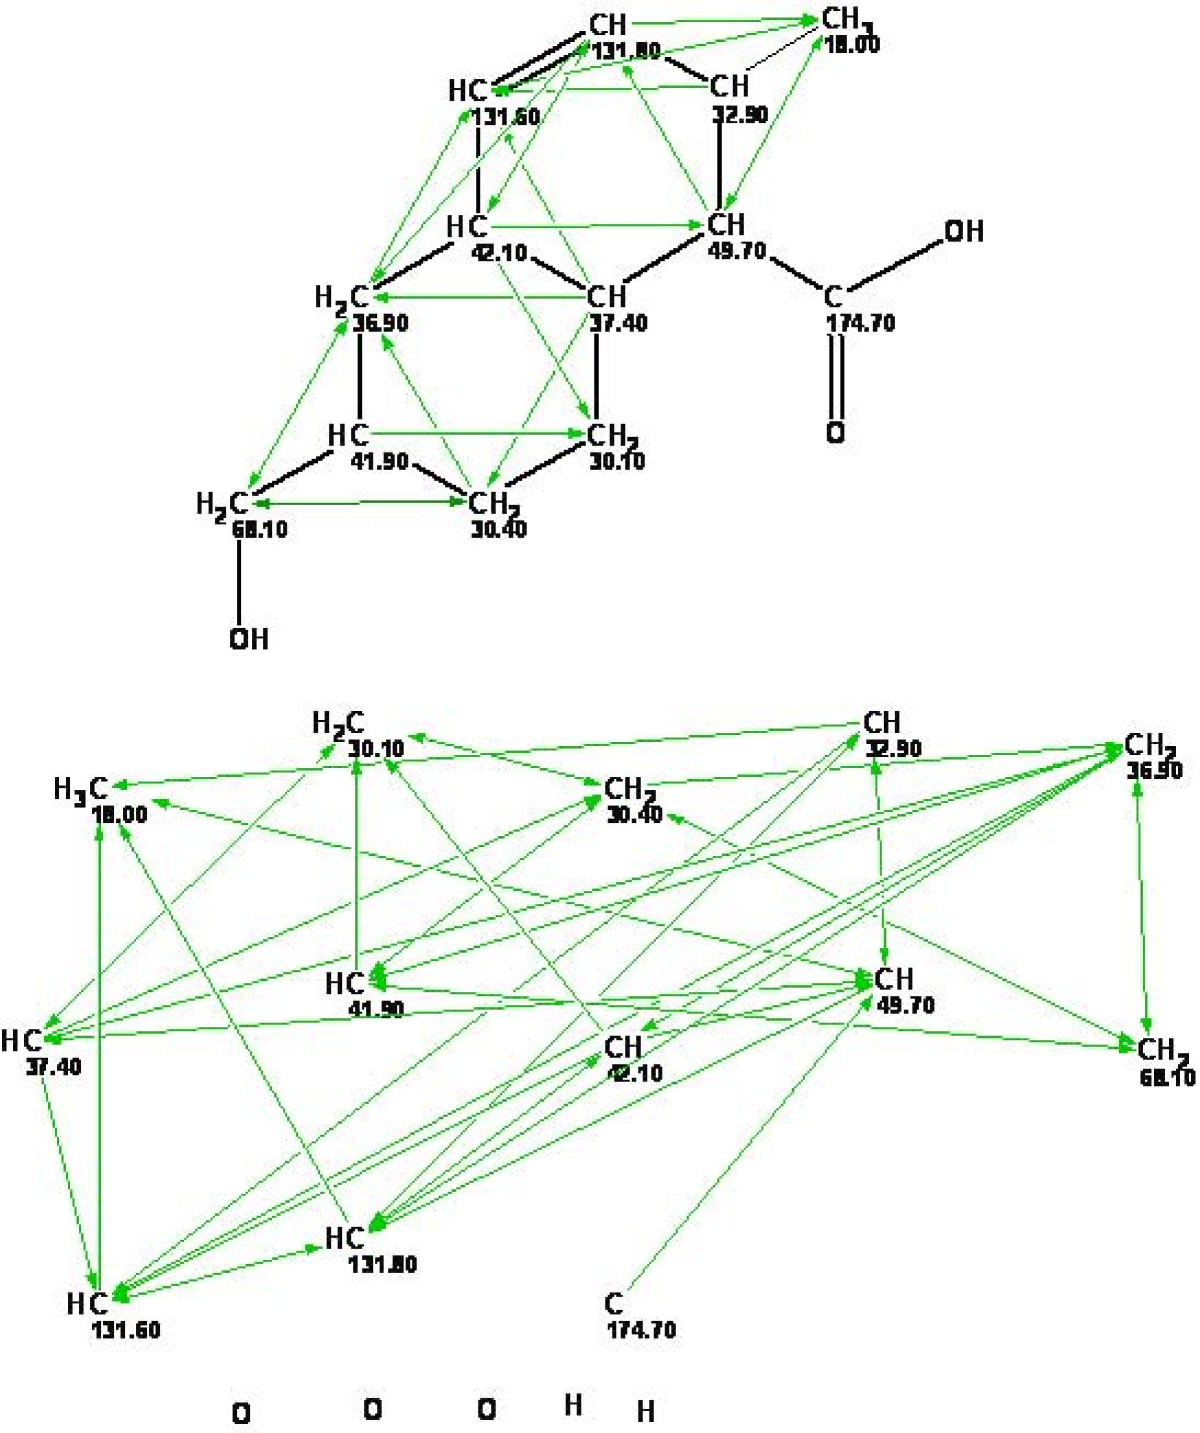 http://static-content.springer.com/image/art%3A10.1186%2F1758-2946-1-3/MediaObjects/13321_2009_Article_3_Fig5_HTML.jpg